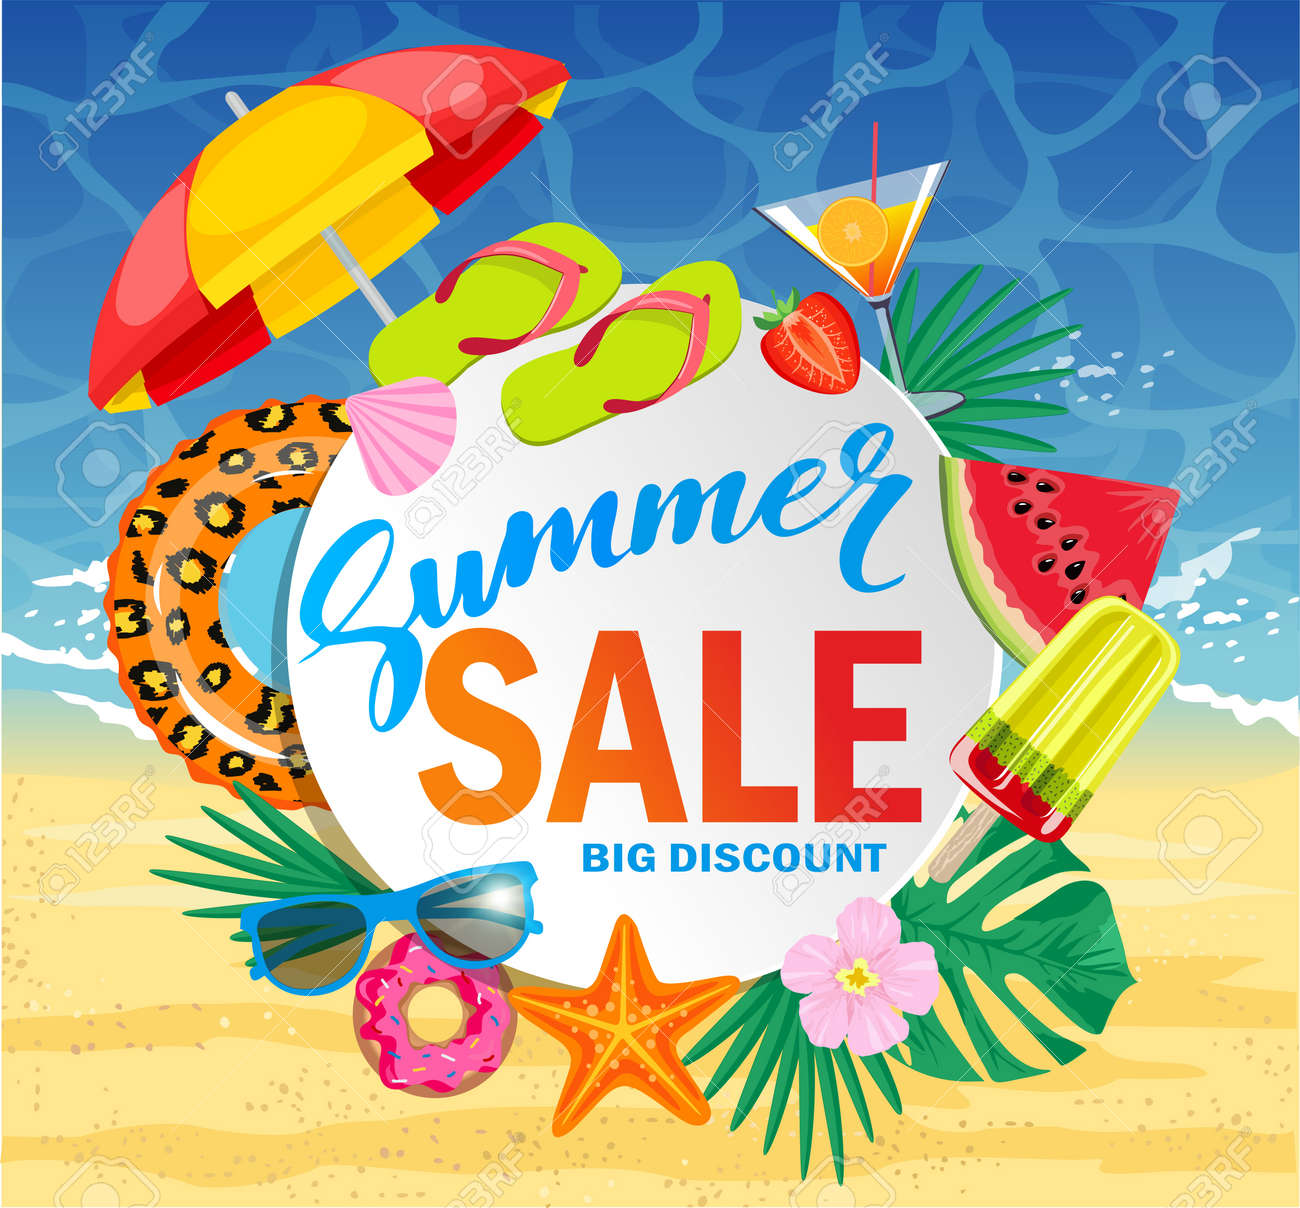 Summer sale vector banner design for promotion with colorful beach elements over white circle. Top view of sunglasses, slices of watermelon, cocktail, seashells on wooden texture. Vector illustration - 168572964